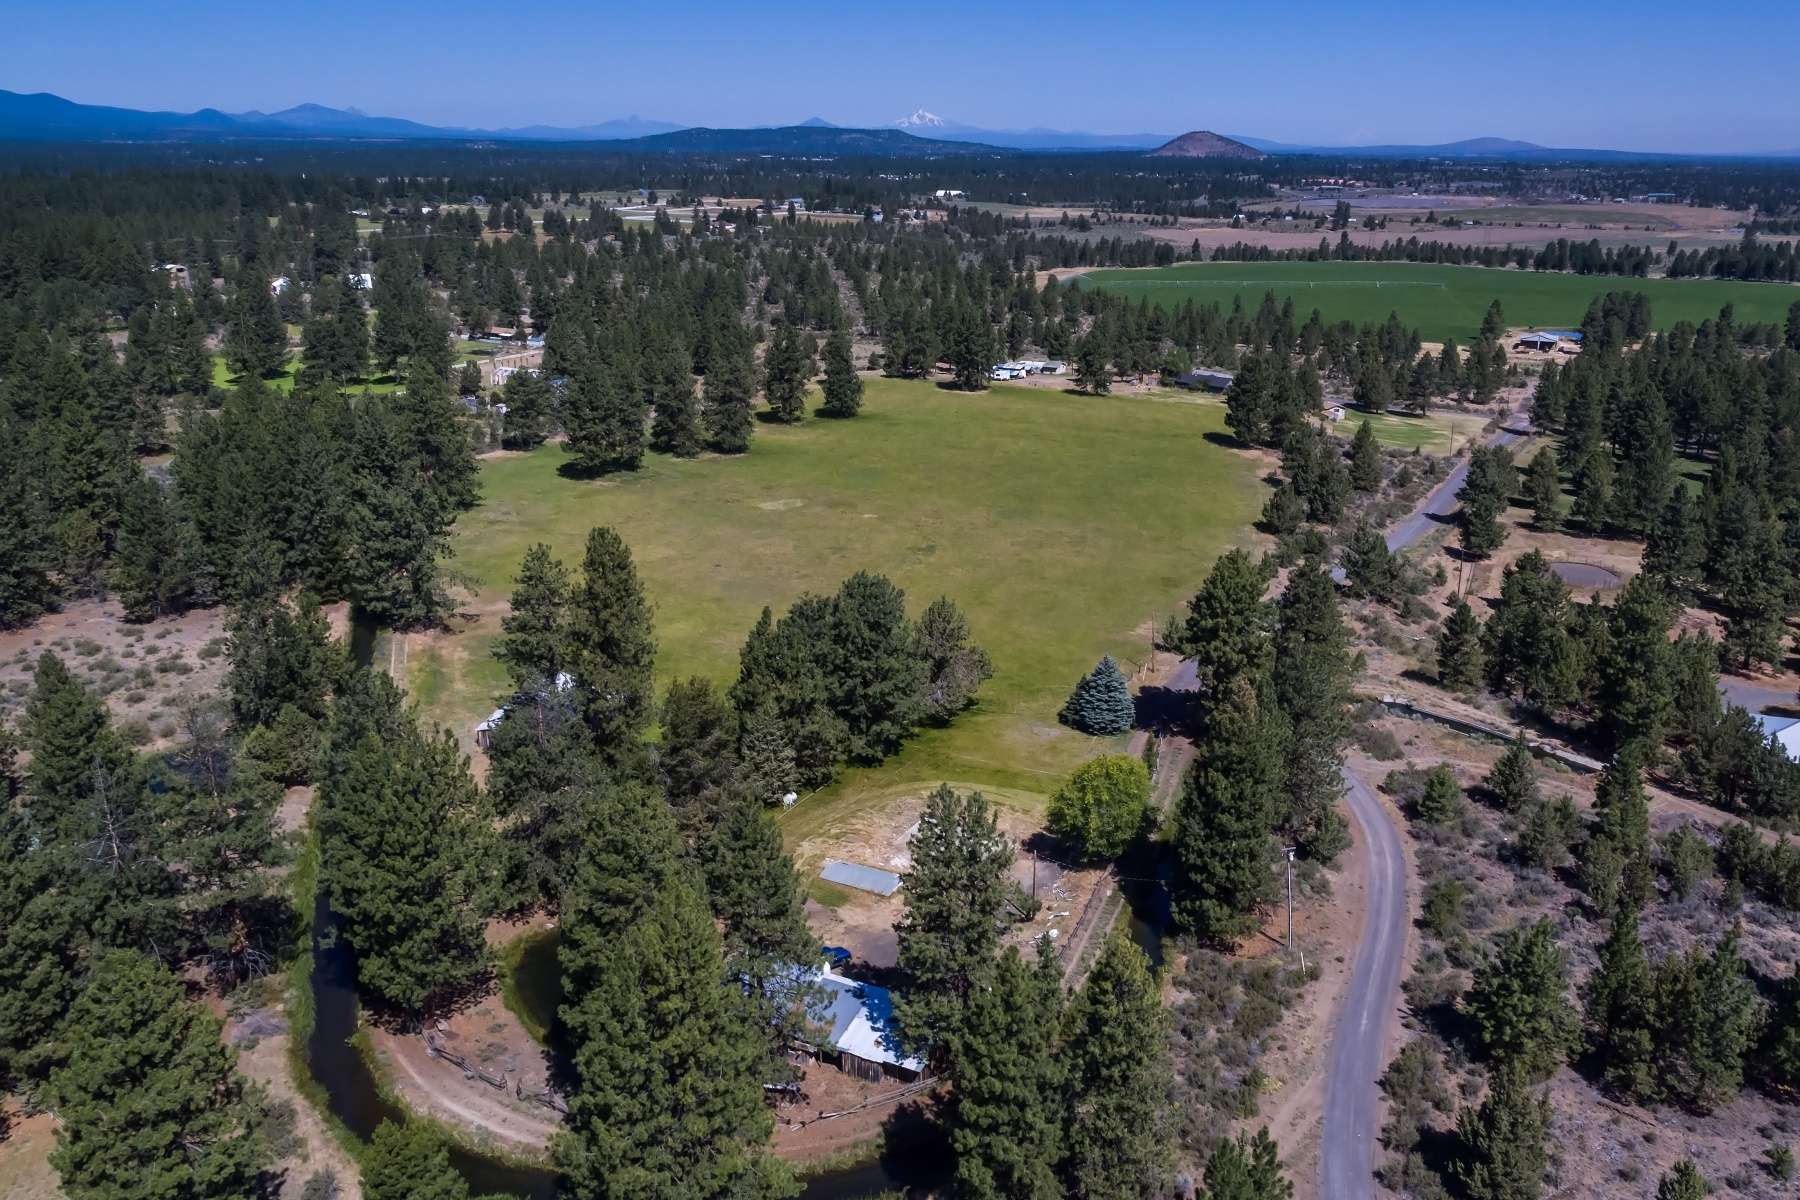 Terreno para Venda às Bend Buildable Acreage 60305 Nighthawk Rd Bend, Oregon, 97702 Estados Unidos